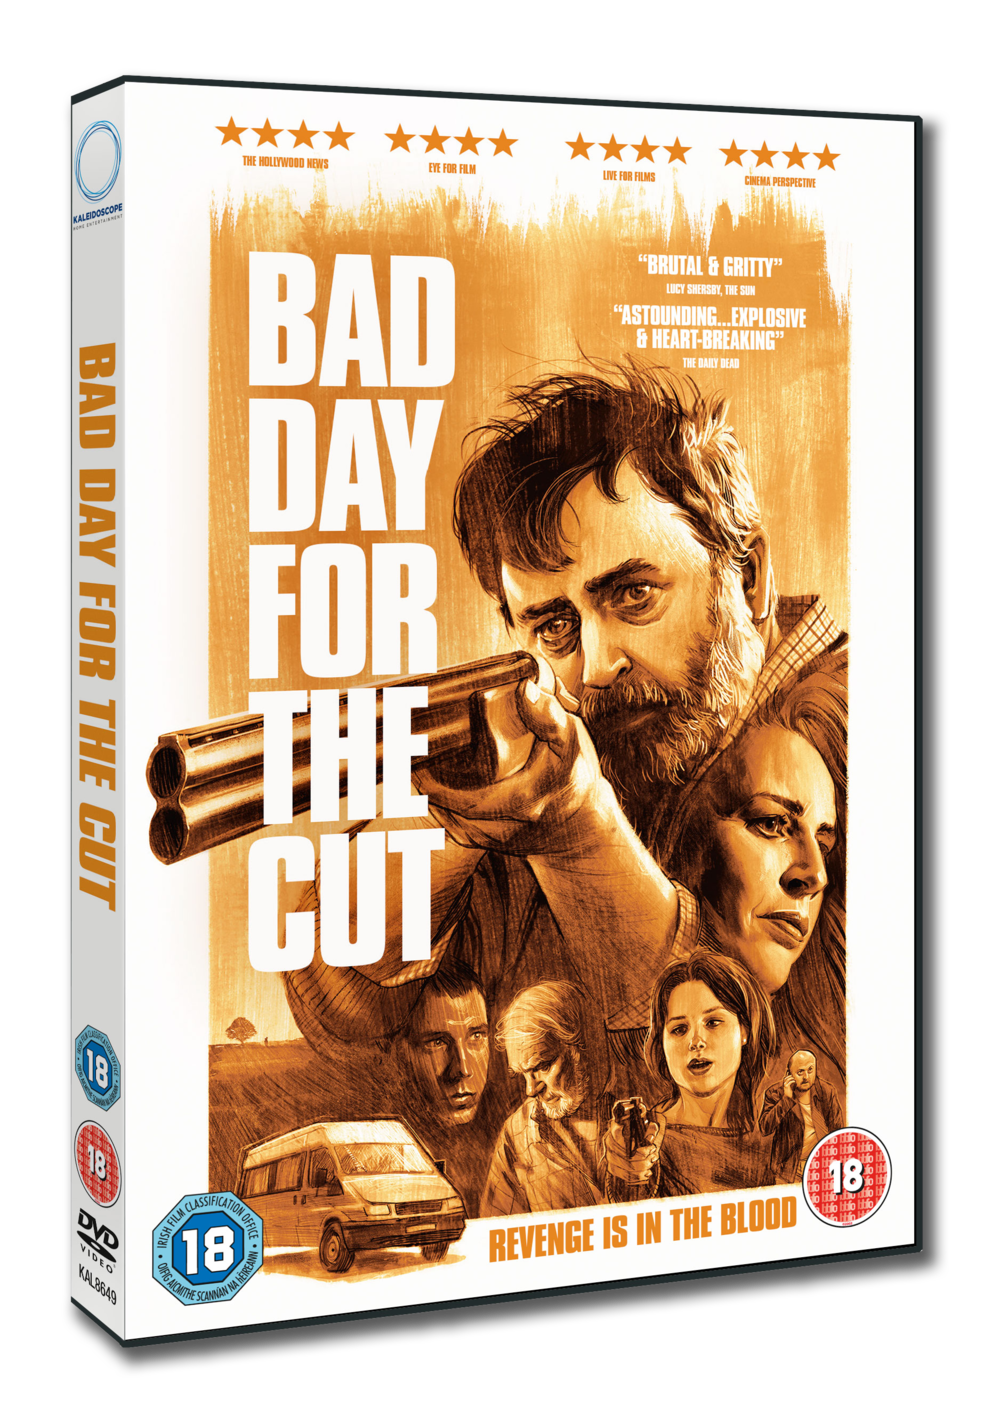 BAD_DAY_FOR_THE_CUT_3D_DVD.png